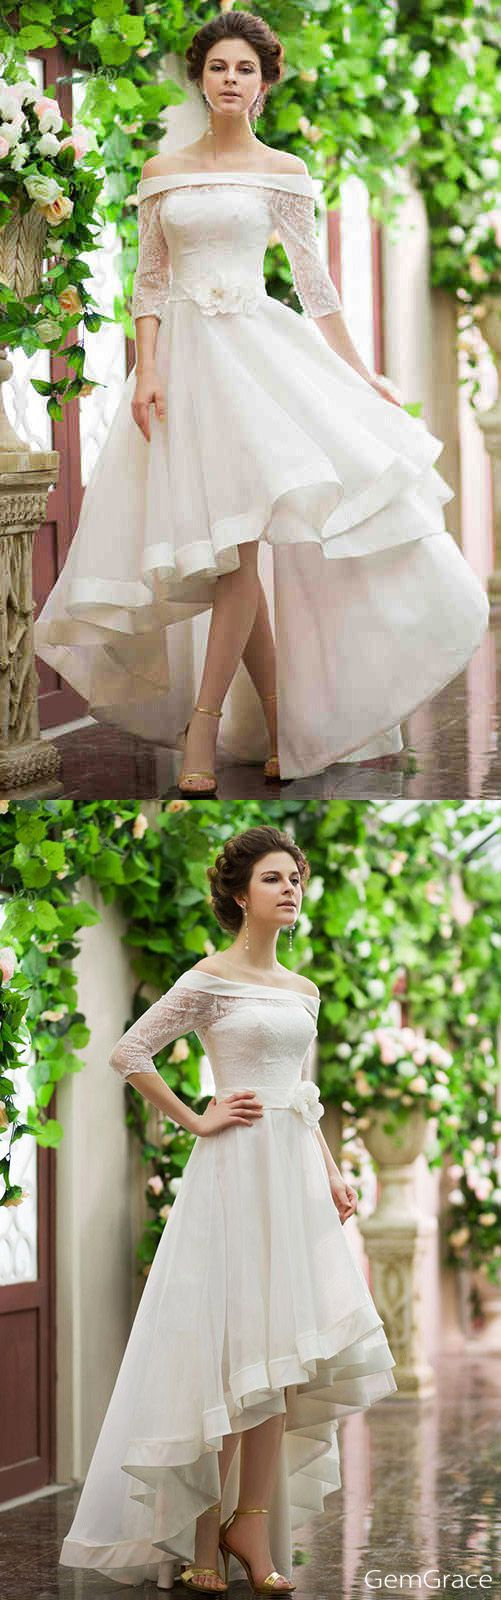 Finally found my high low wedding dress style!! It is gorgeous with the off shoulder neckline and half lace sleeve. Wedding dresses for destination weddings. Trendy summer wedding dress that really fun for beach wedding too. Ready to run with it?